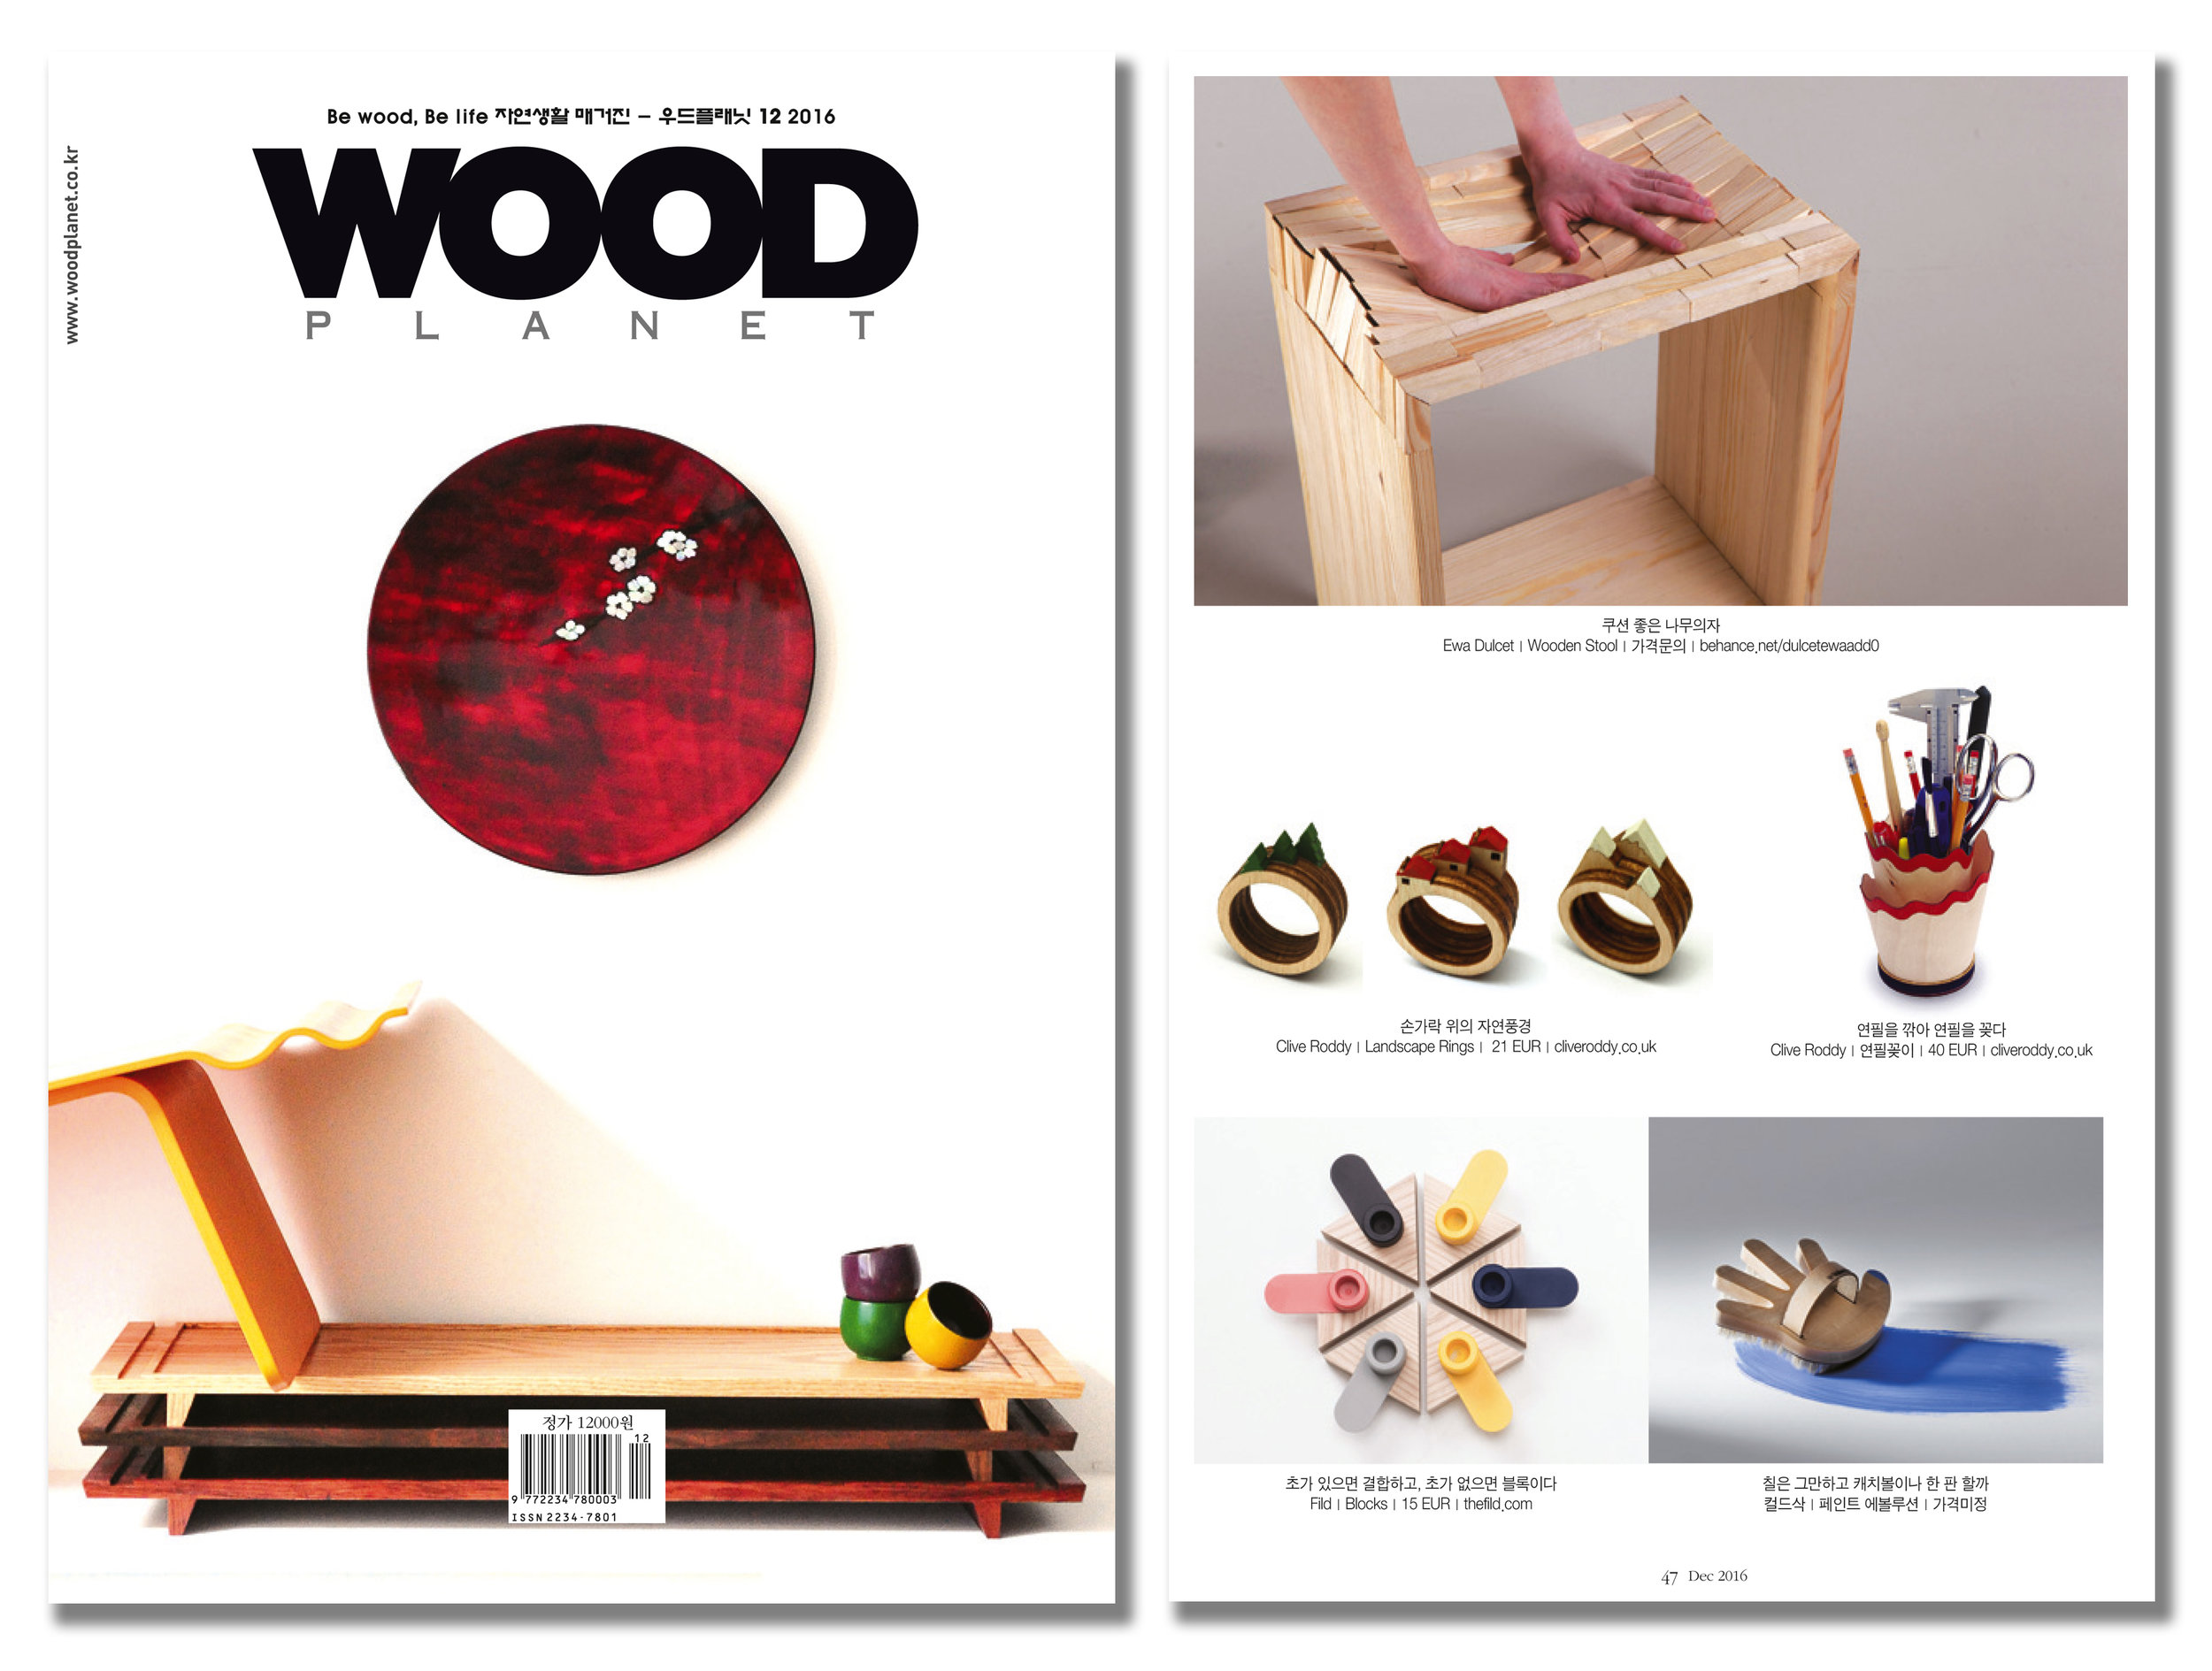 Work featured in Wood Planet Magazine. Published in December 2016. Korea.